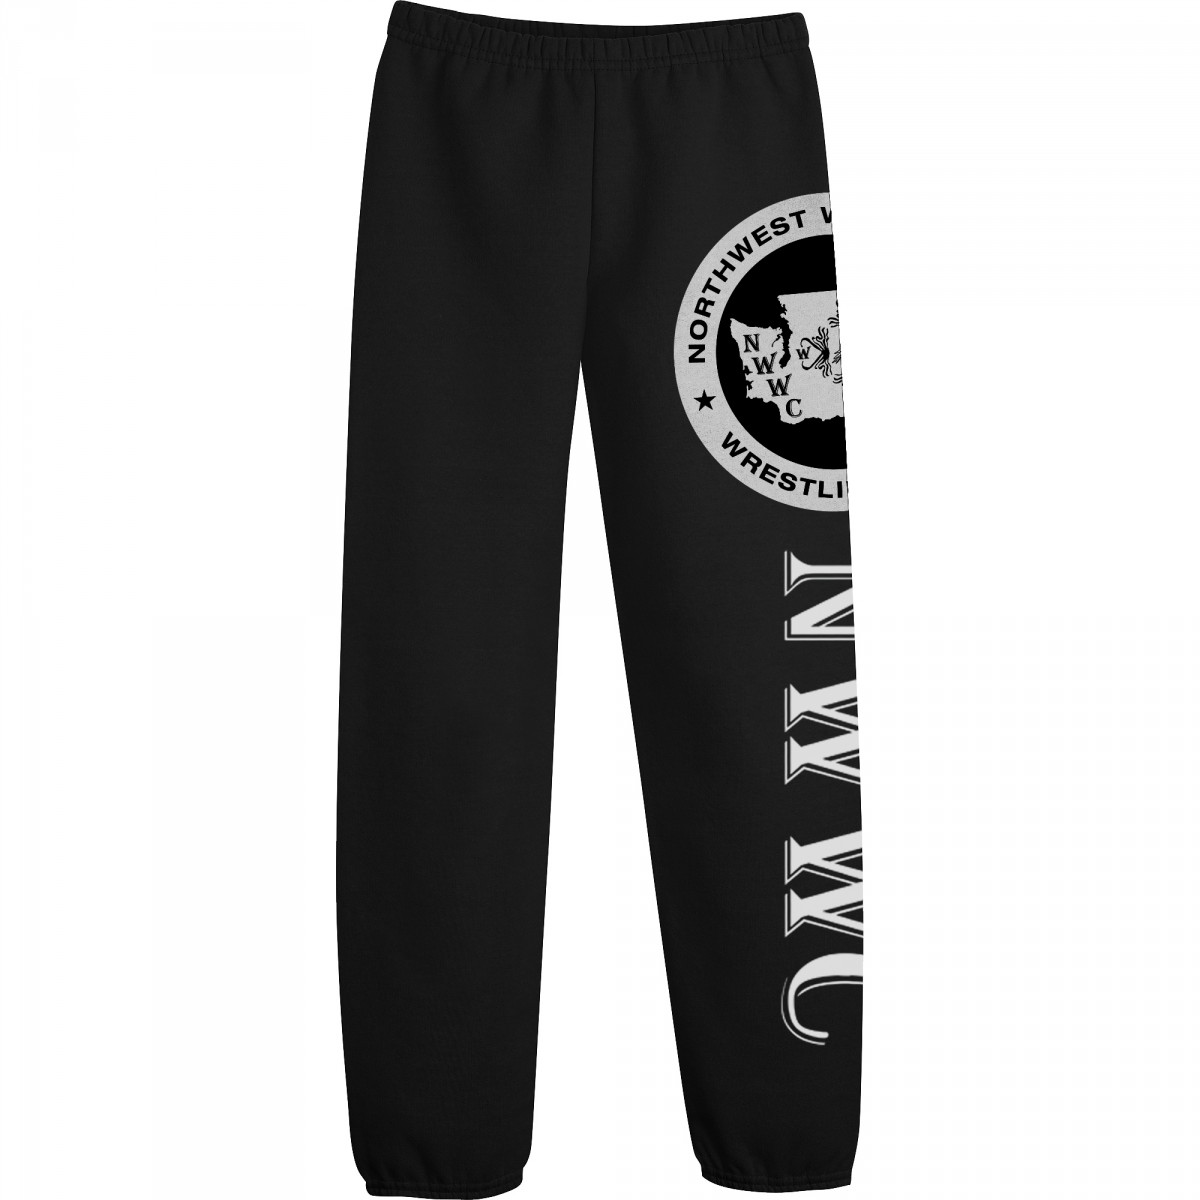 NWWC Black Sweatpants White Logo-Black-S